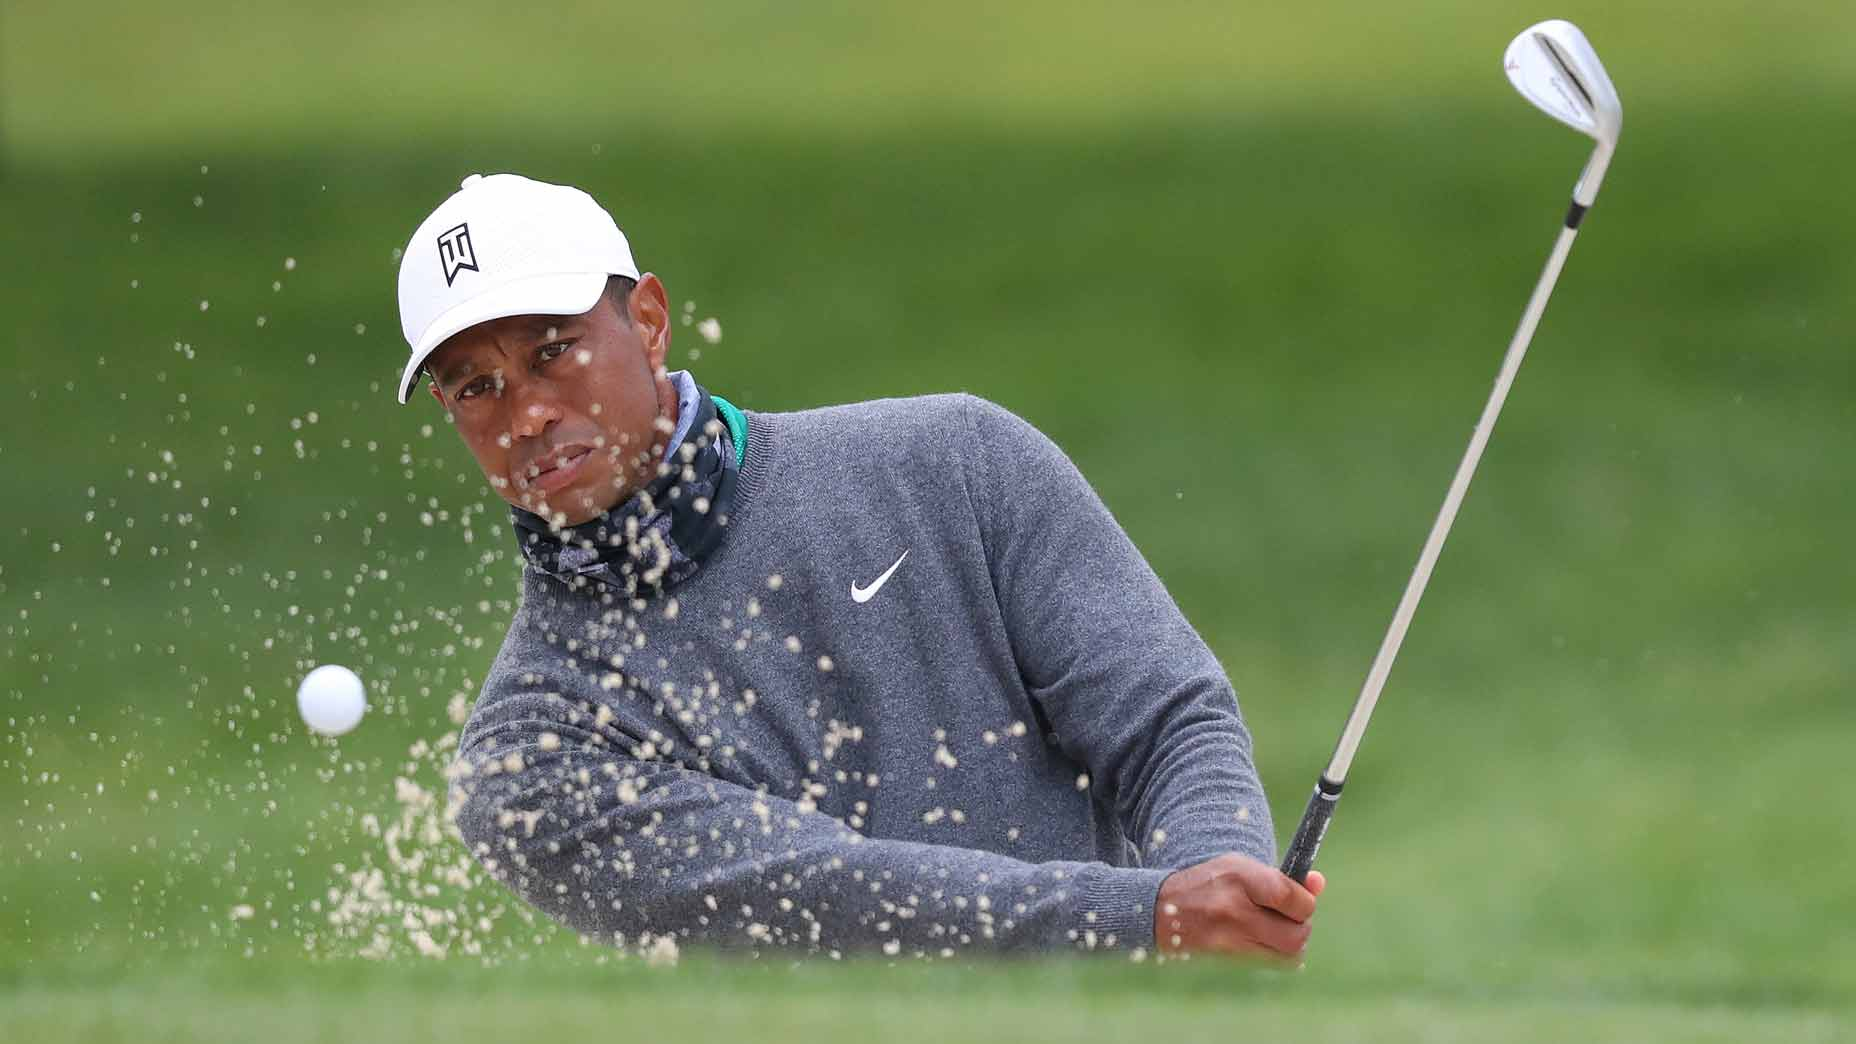 Tiger Woods practices at 2020 PGA Championship